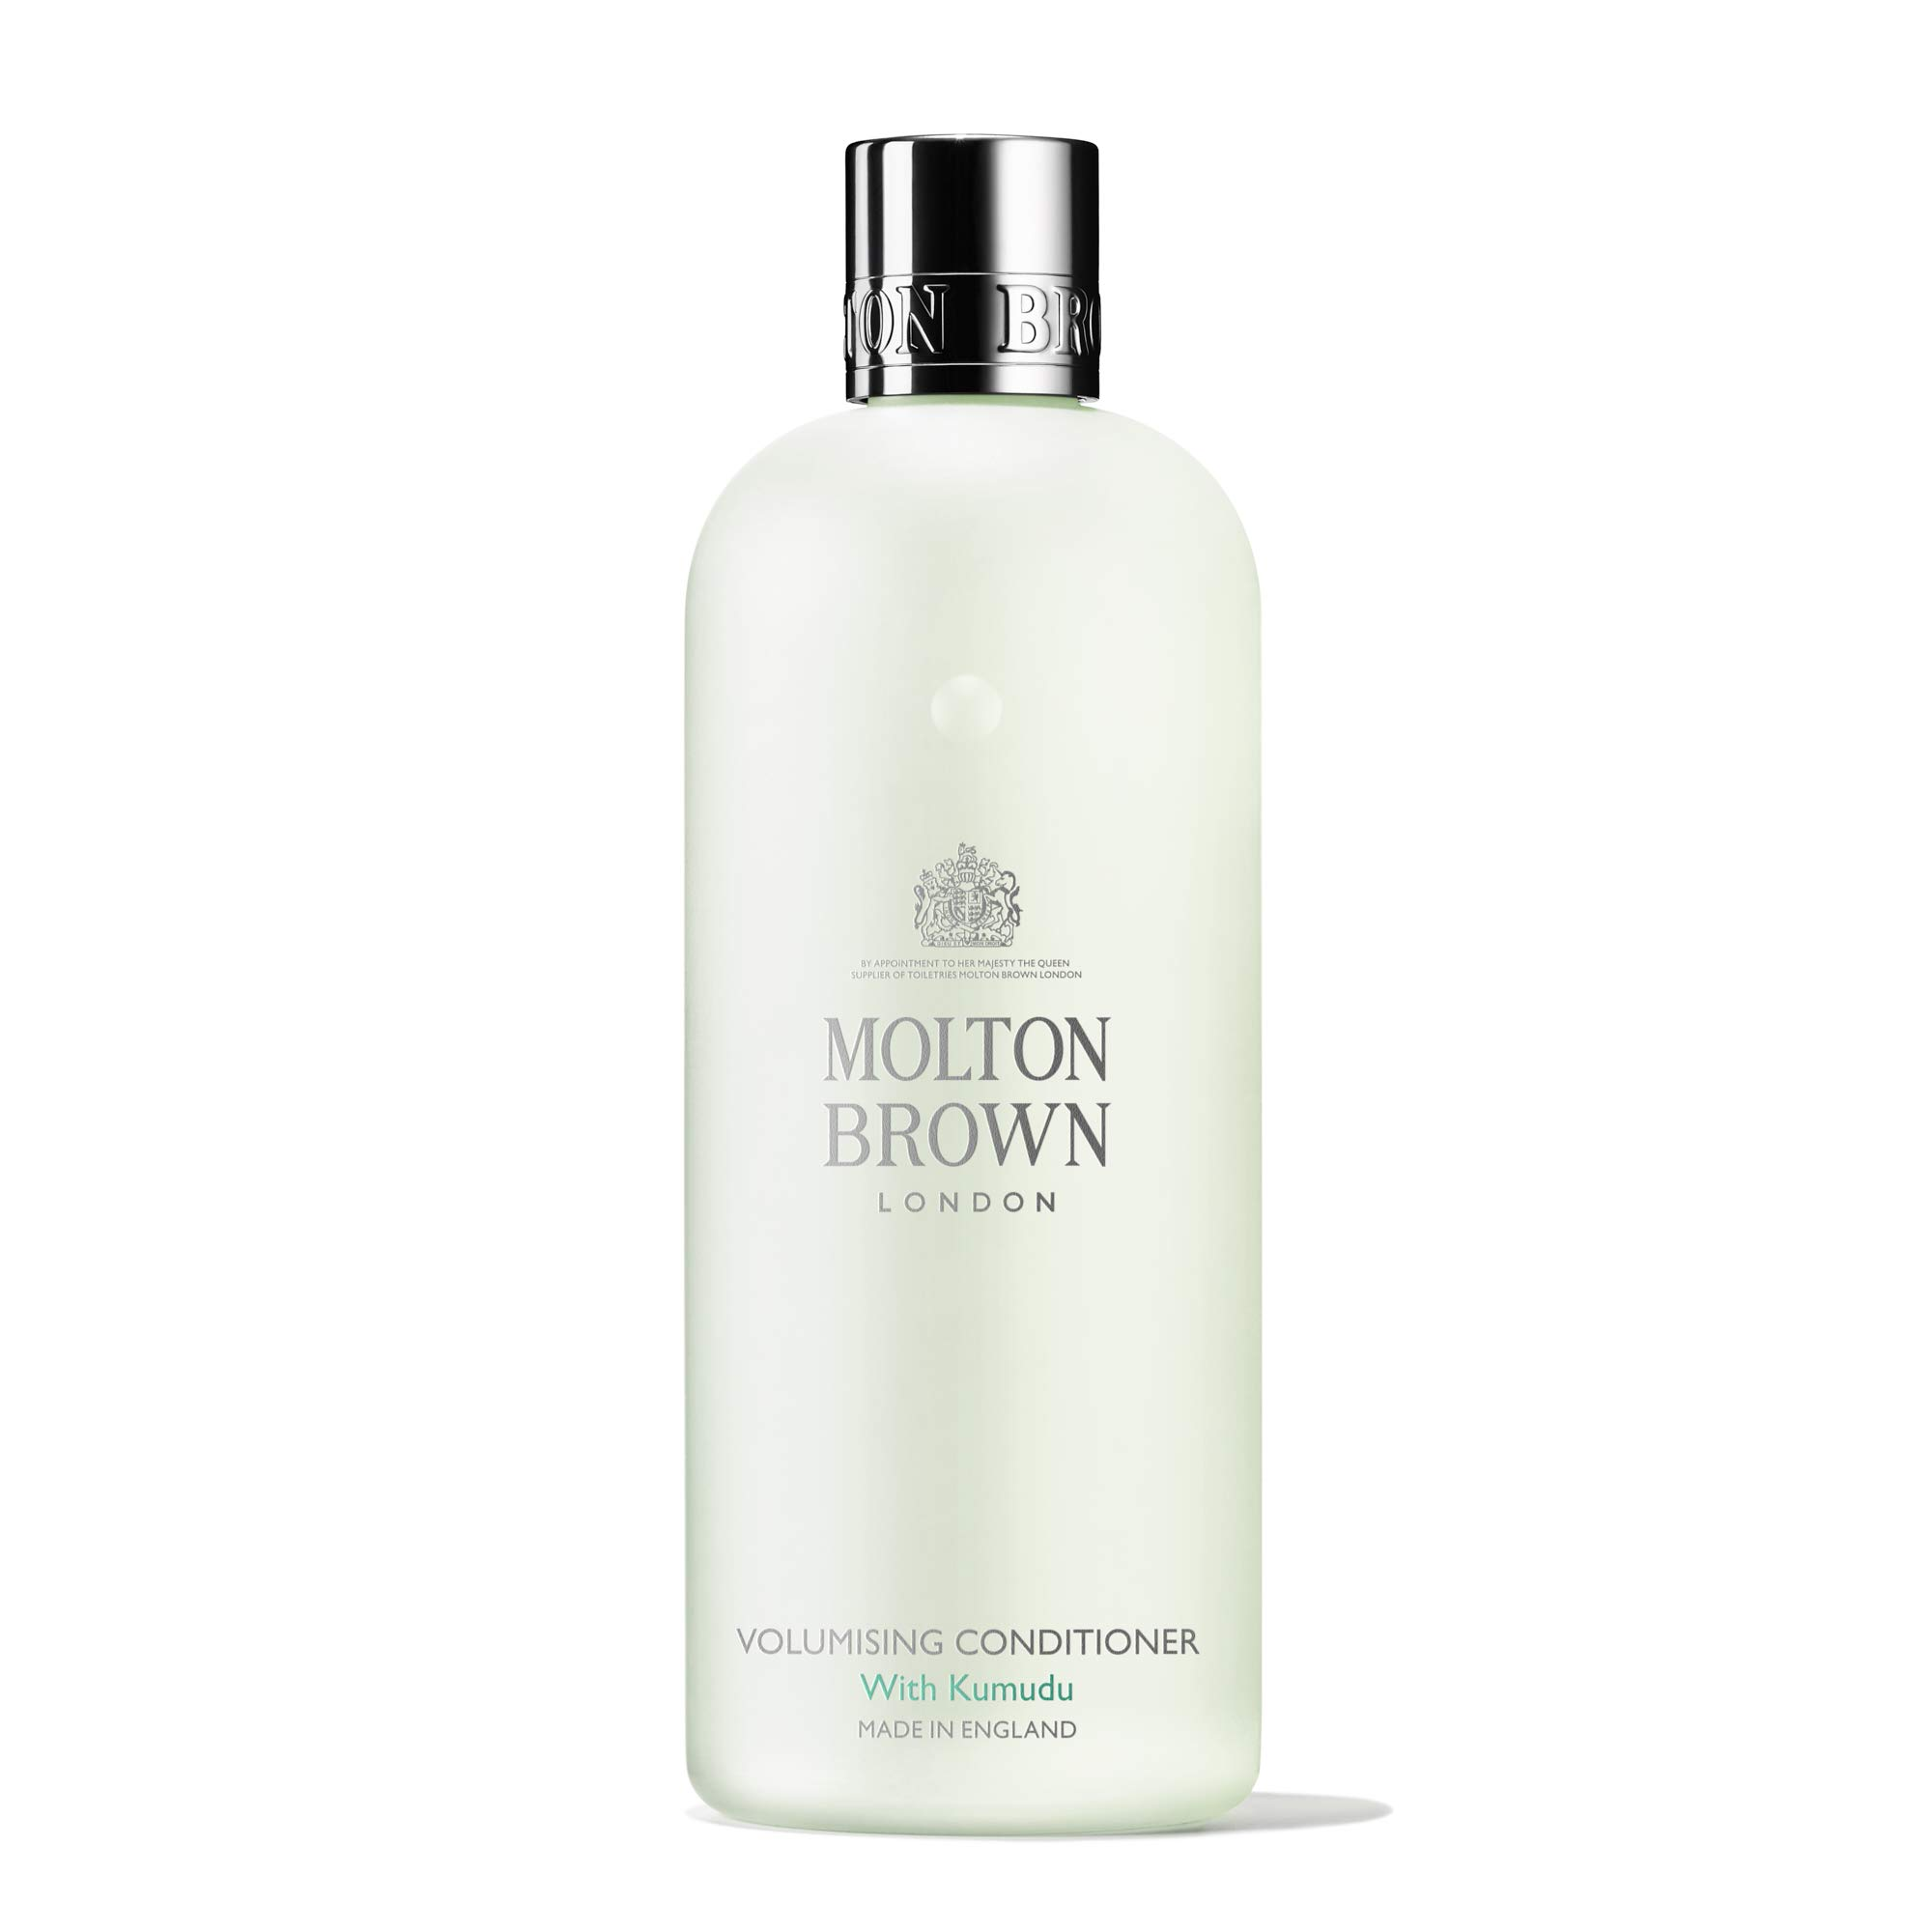 9f8730dc437 Molton Brown Volumising Conditioner with Kumudu